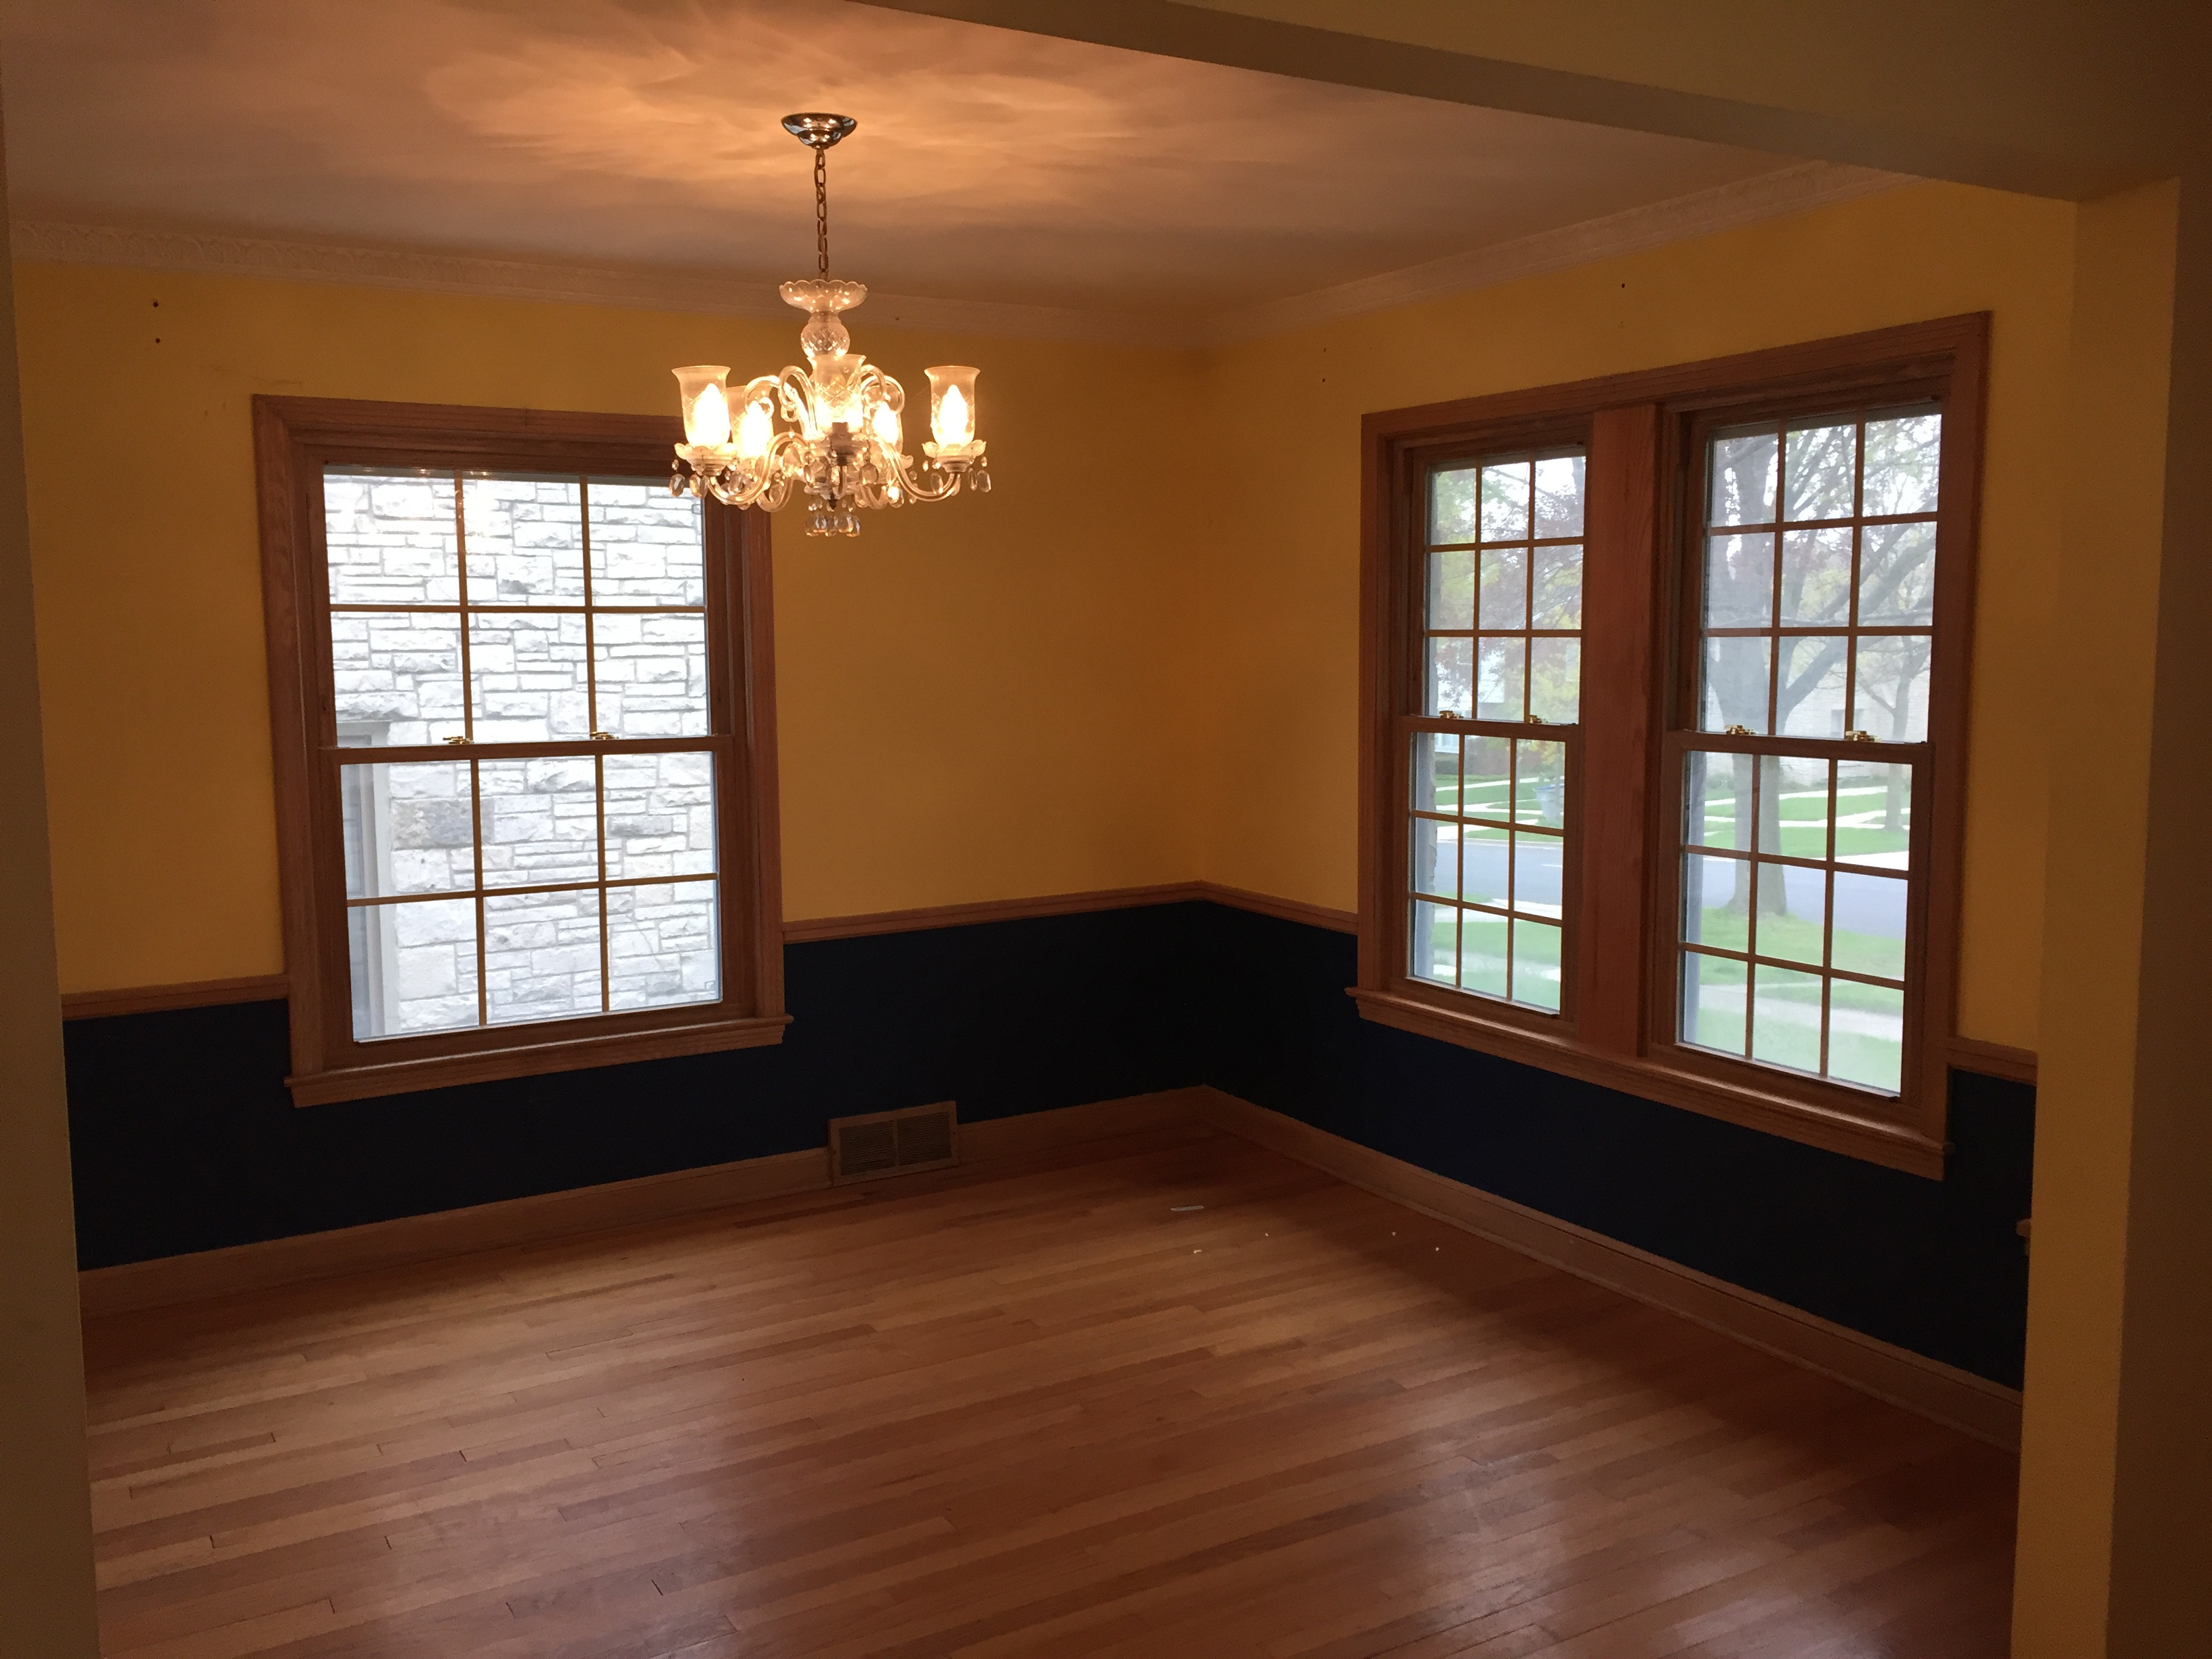 hardwood floor restoration milwaukee of investor property 68th street in coveted enderis park milwaukee wi regarding beautiful marble fireplace in living room with wood floors ready to be refinished